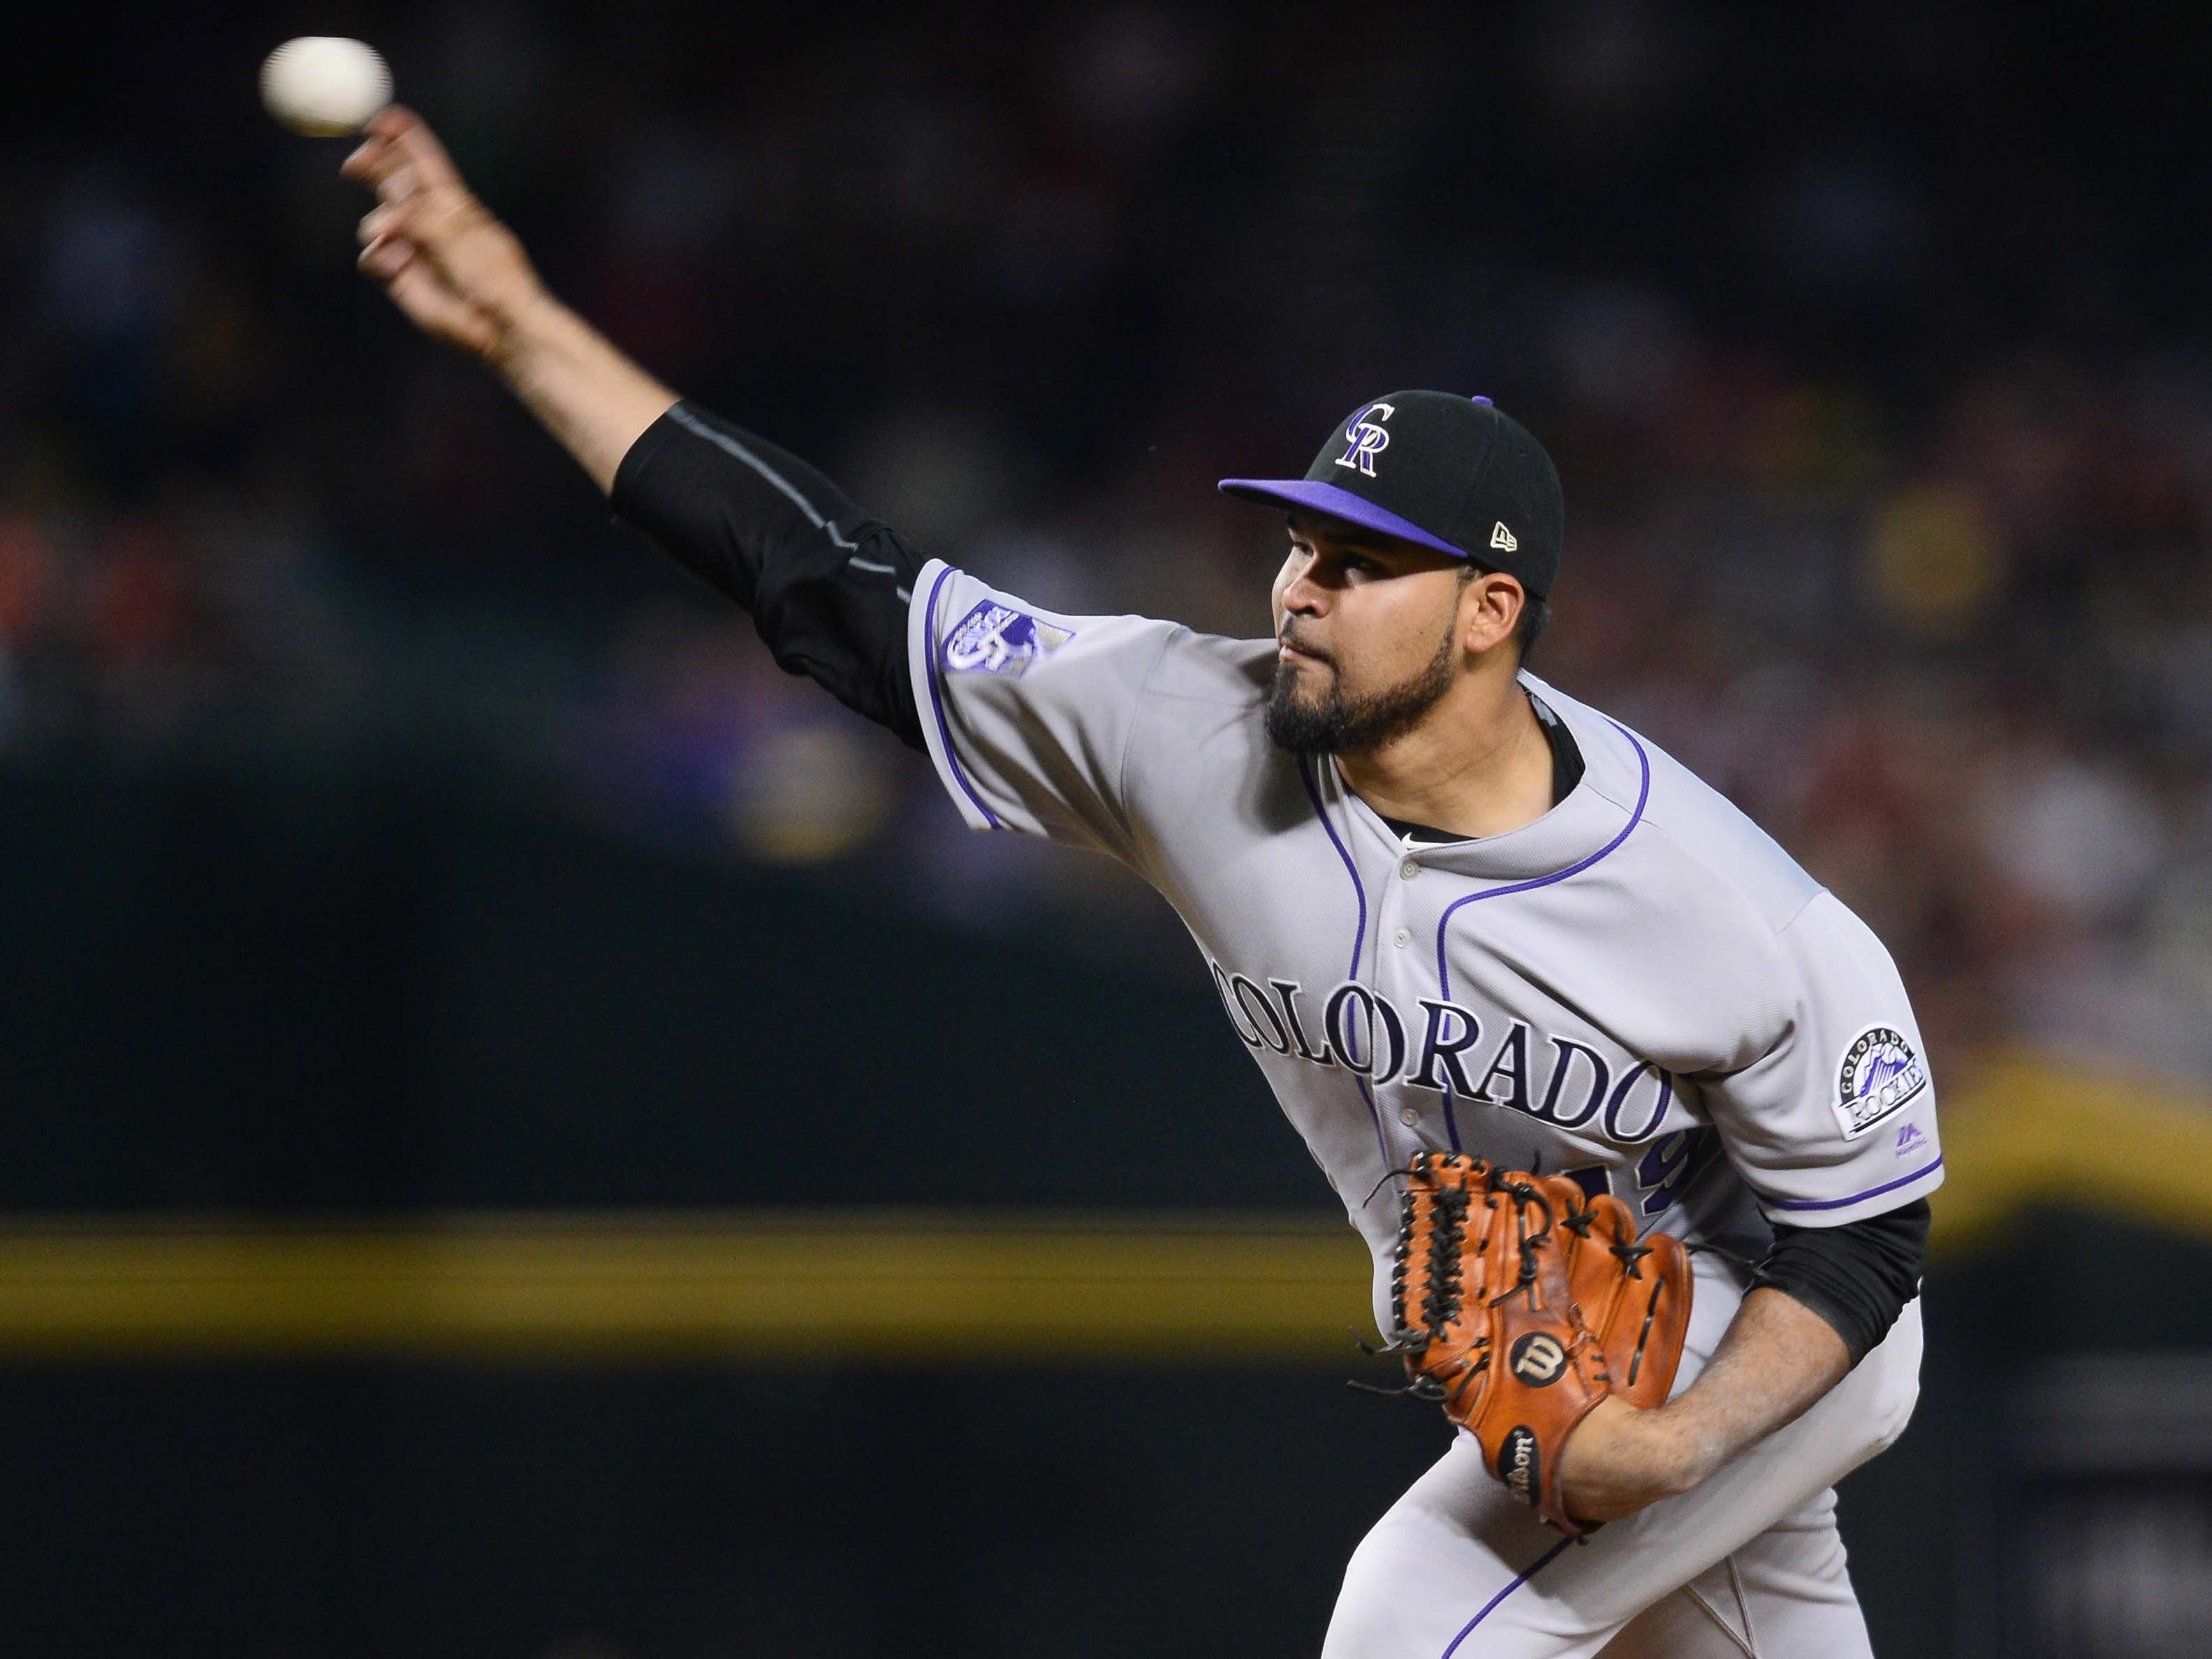 Sep 22, 2018; Phoenix, AZ, USA; Colorado Rockies starting pitcher Antonio Senzatela (49) pitches against the Arizona Diamondbacks during the first inning at Chase Field.